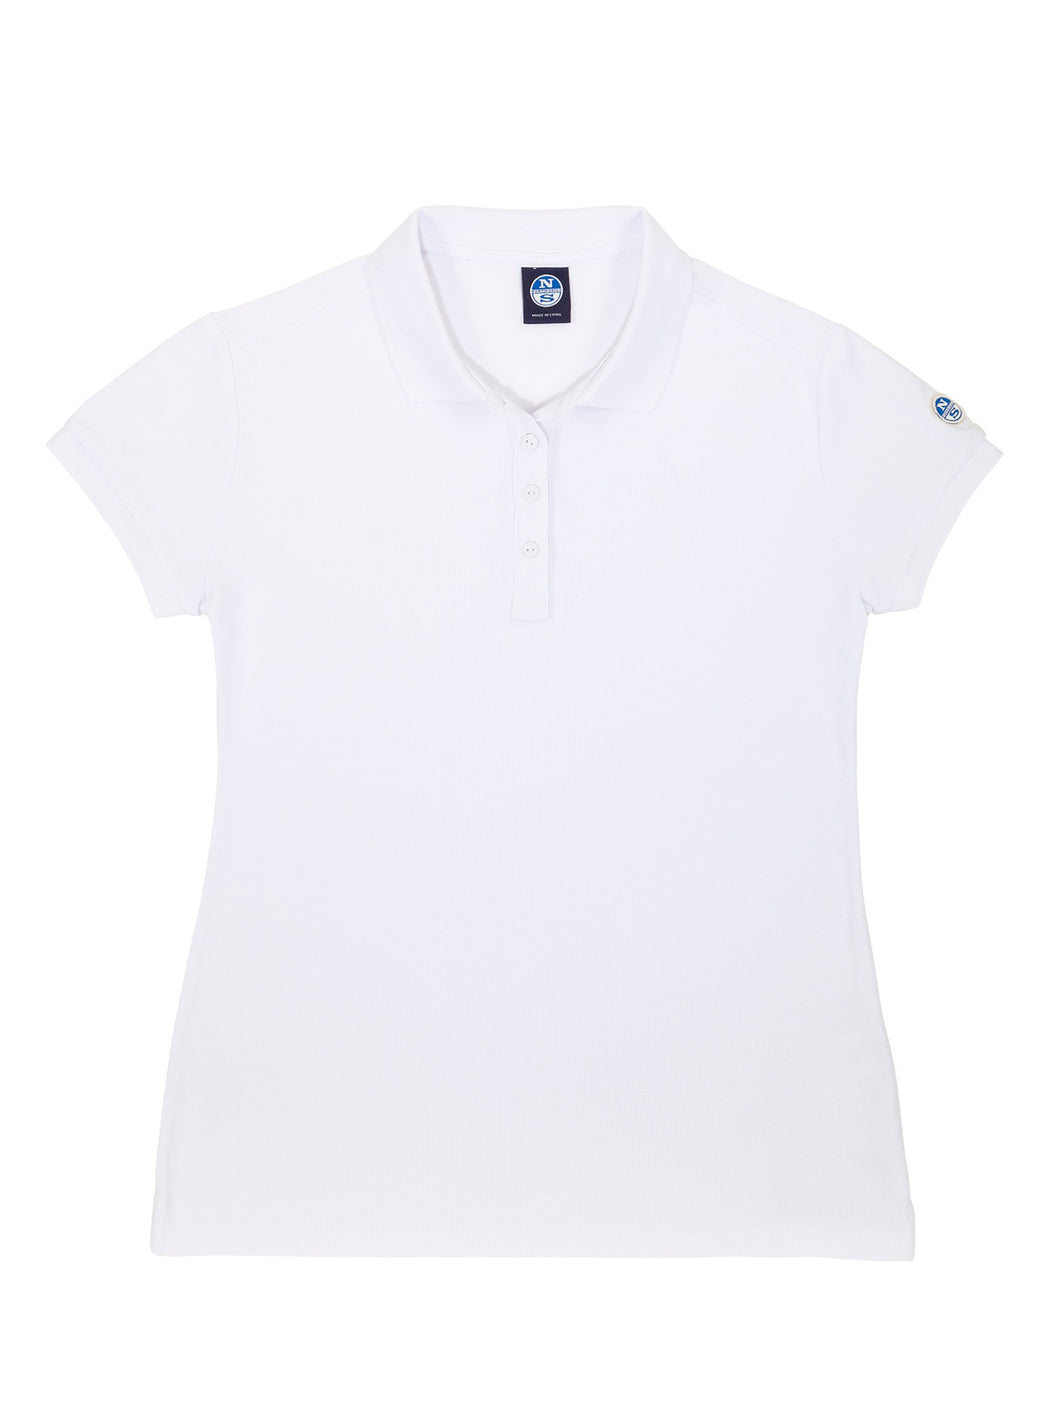 North Sails Womens Tactel Polo